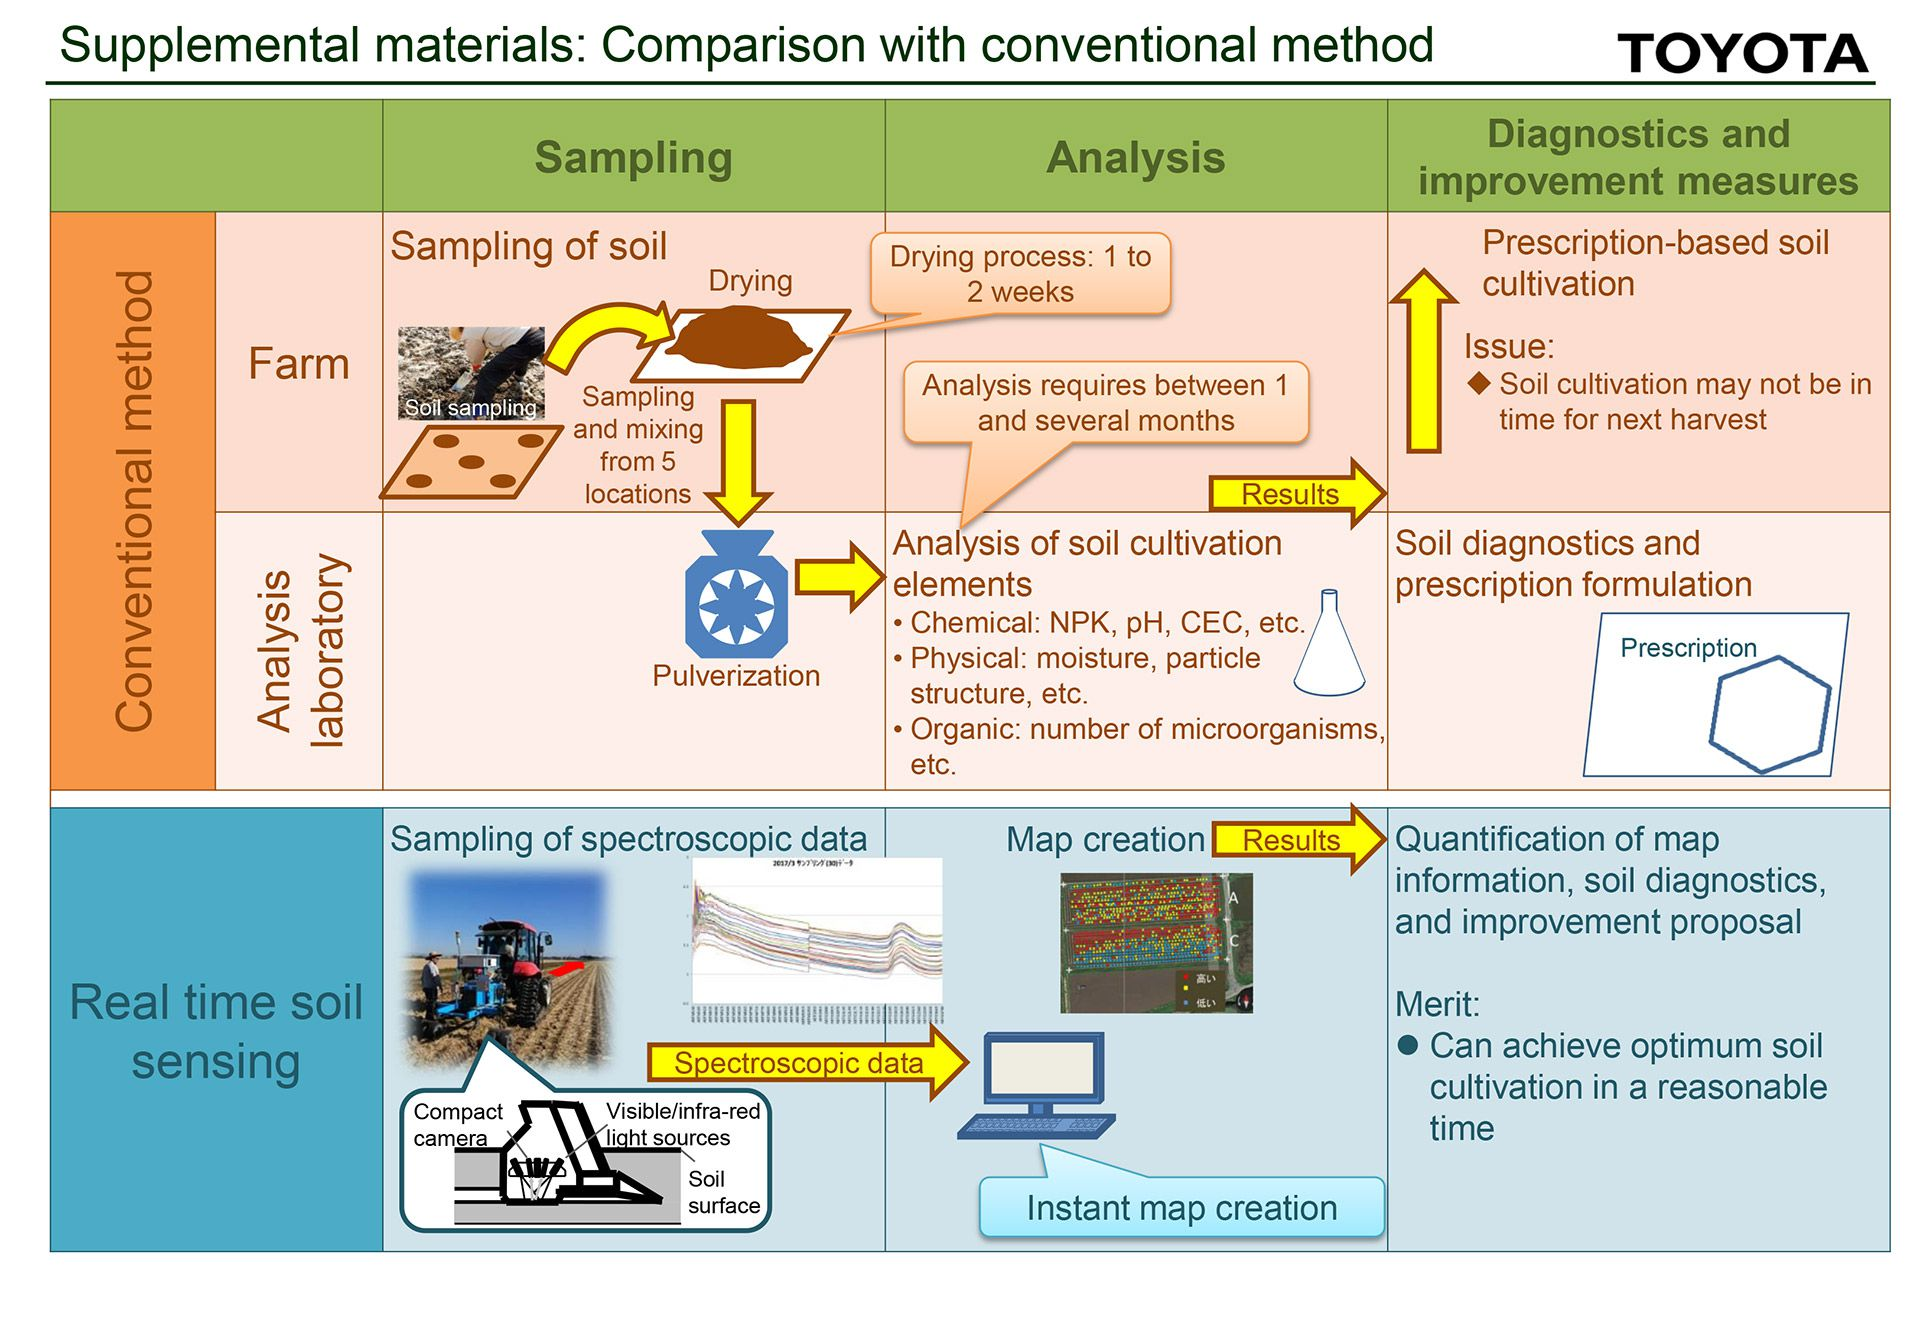 Supplemental materials: Introduction of Real-time Soil Sensor